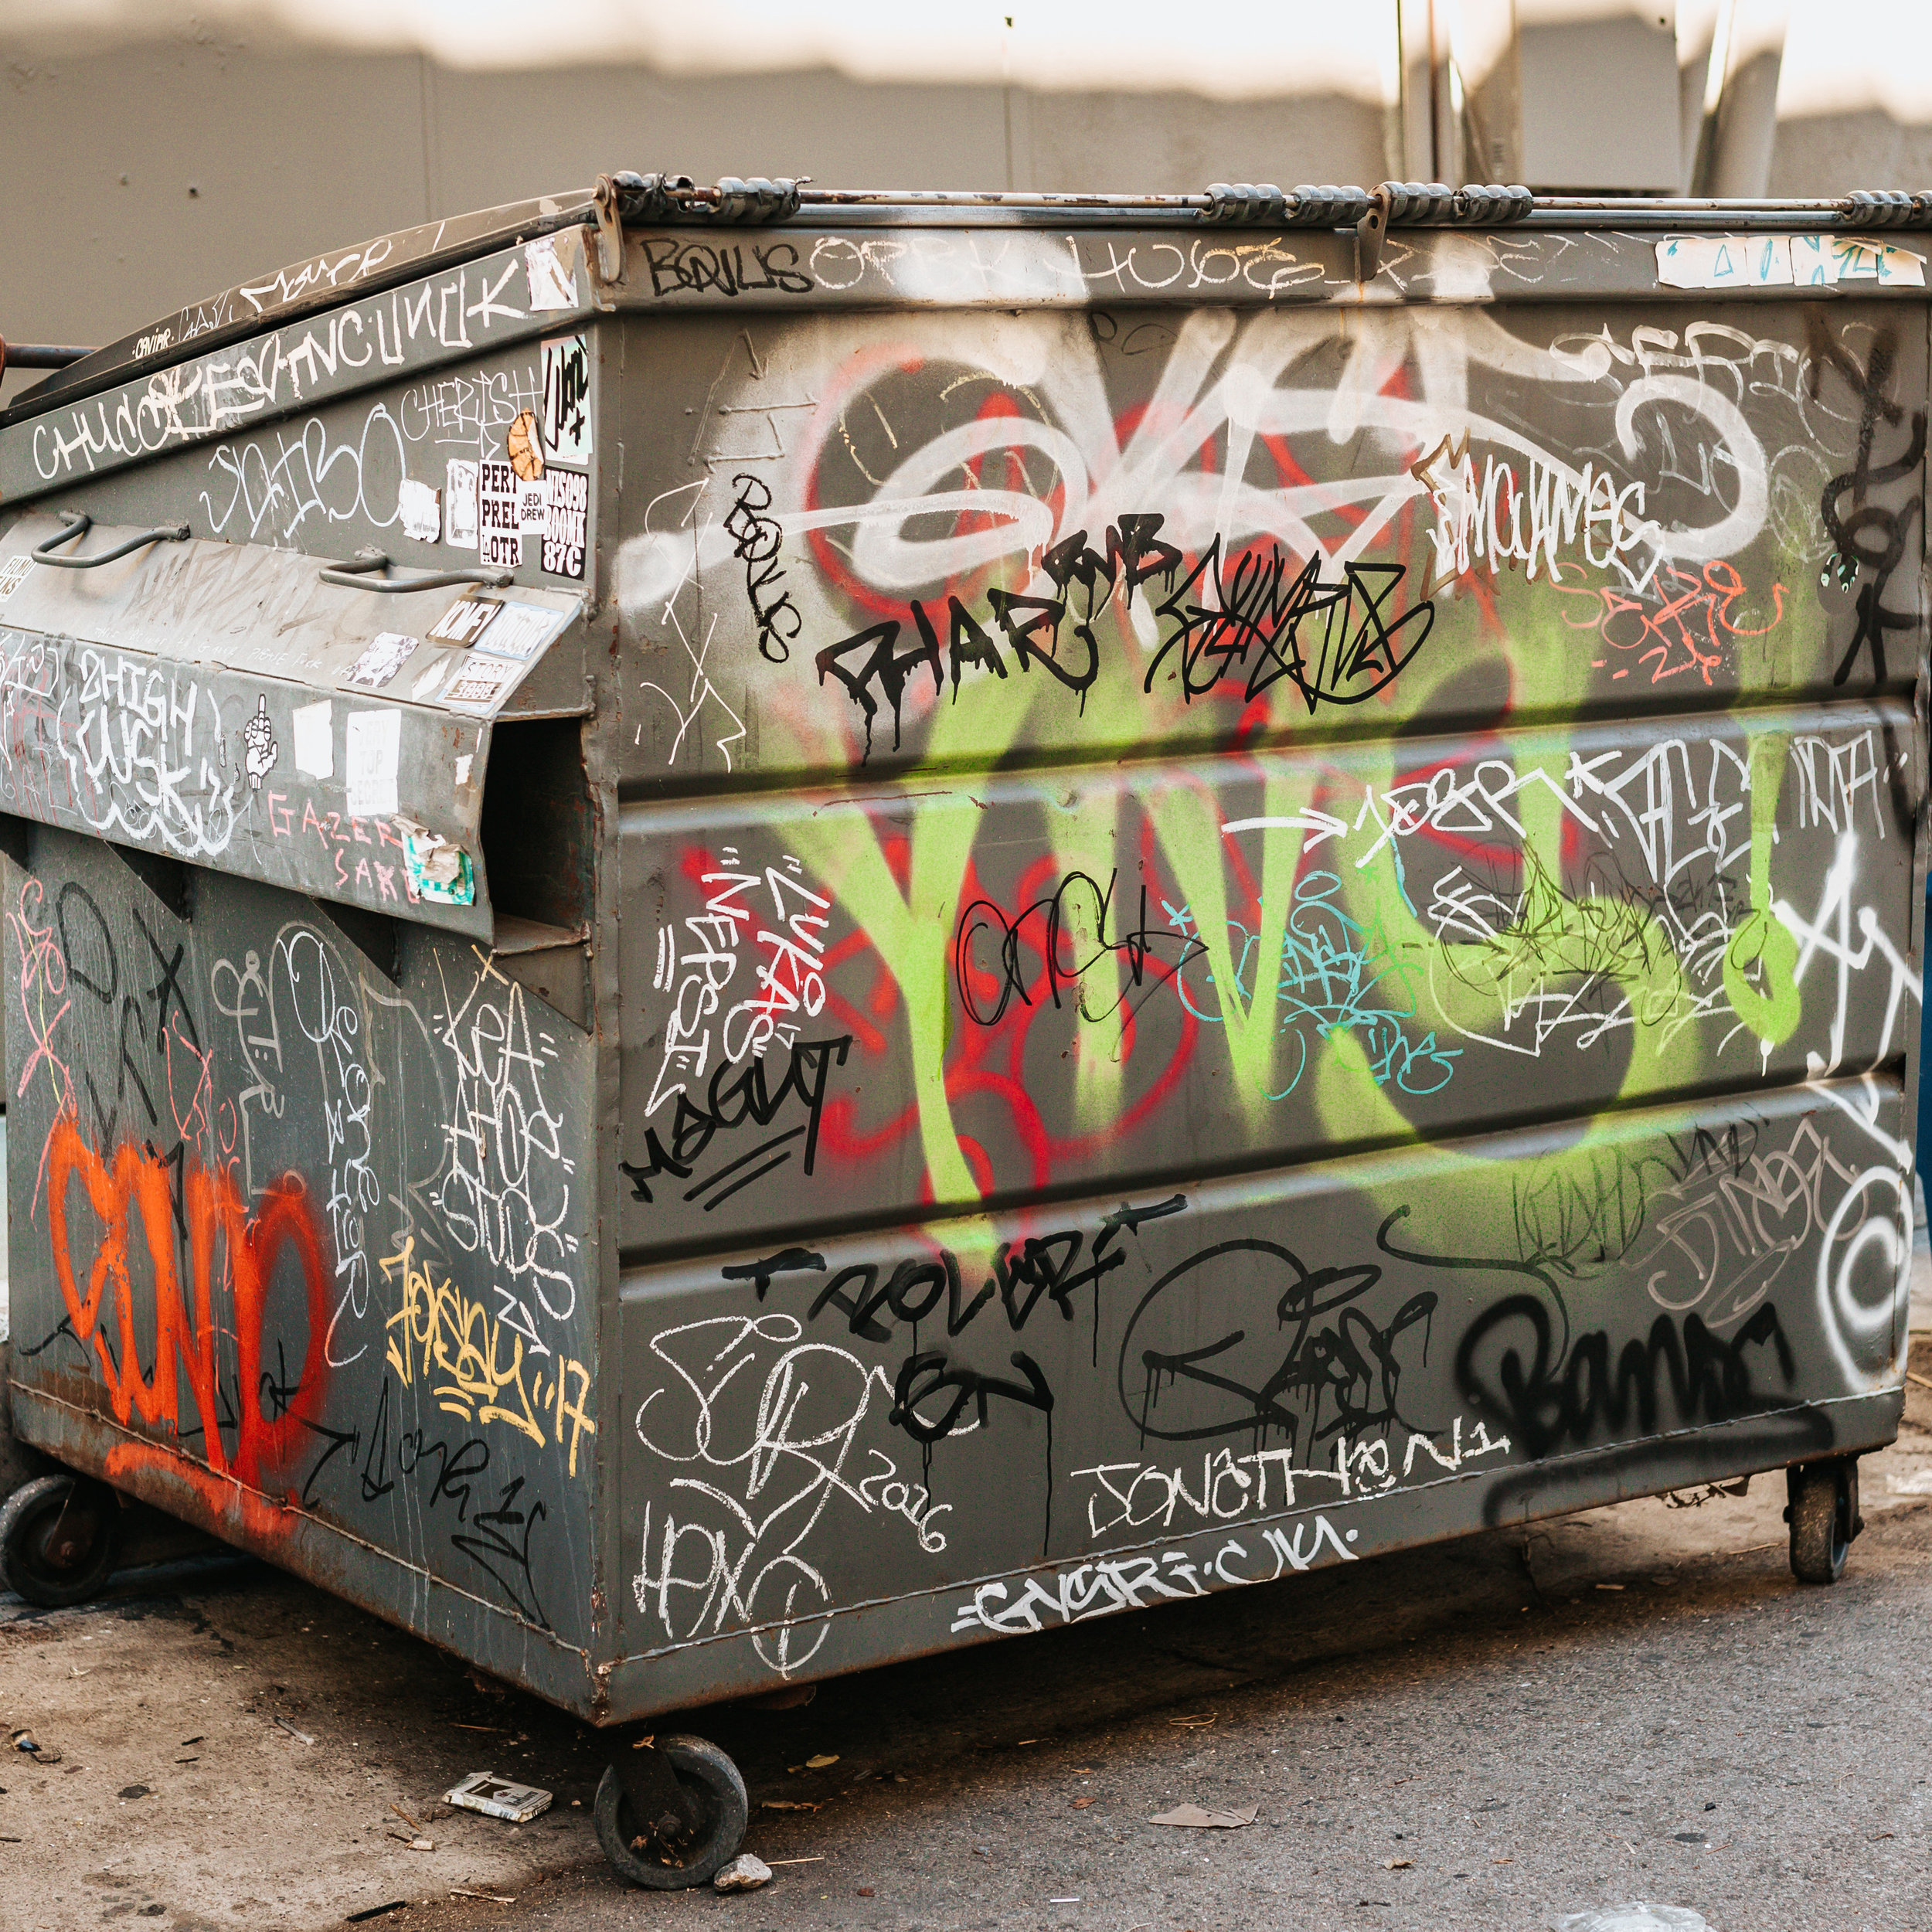 37% of material going into our county landfill is compostable. -